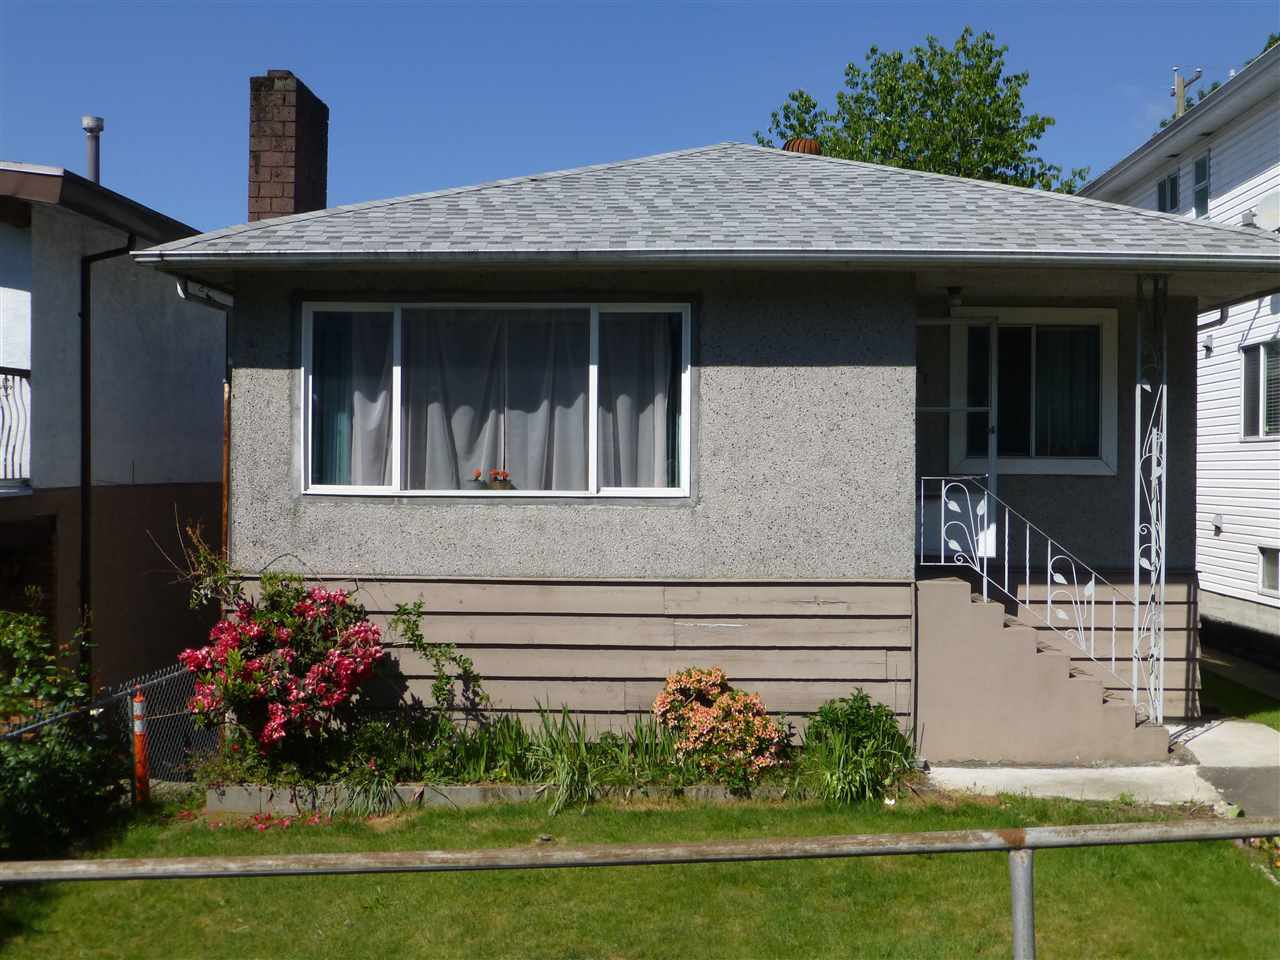 Main Photo: 2617 RENFREW STREET in Vancouver: Renfrew VE House for sale (Vancouver East)  : MLS®# R2067434